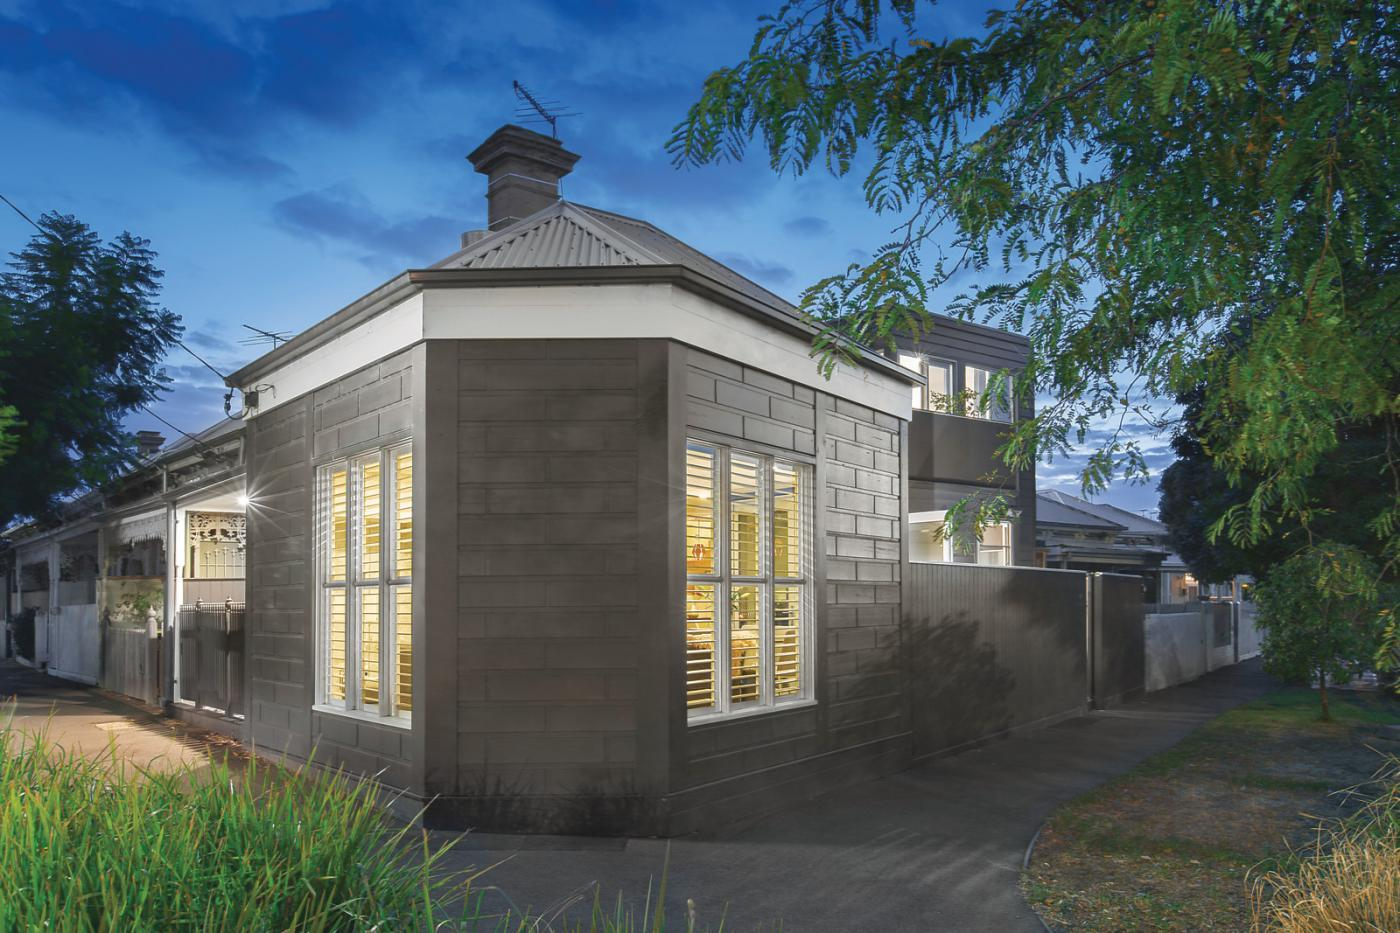 ... Port Melbourne, Vic 3207  $1,400,000 Sold May 6, 2017. Sold May 6,  2017. 281 Esplanade East